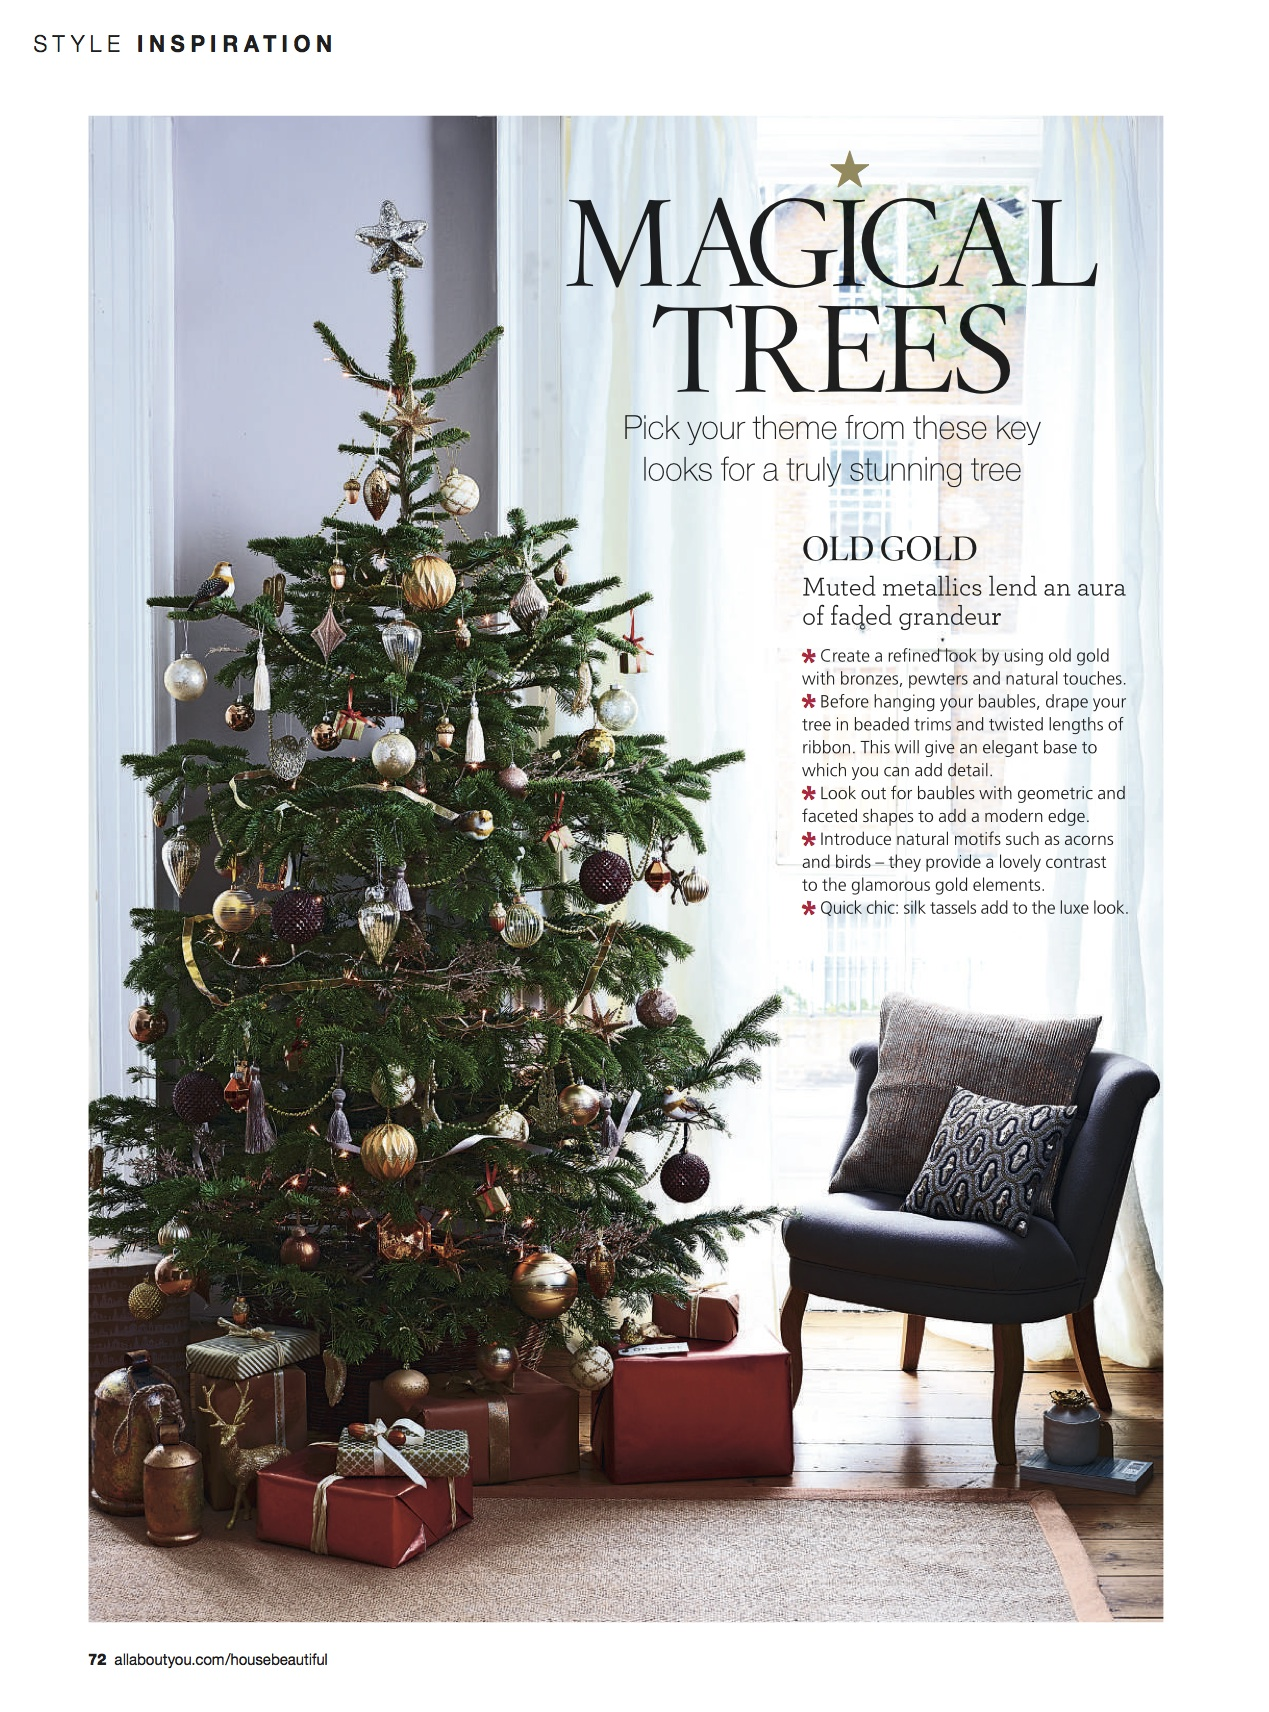 House Beautiful Magical Trees P1 Old Gold PDF by Joanna Thornhill.jpg